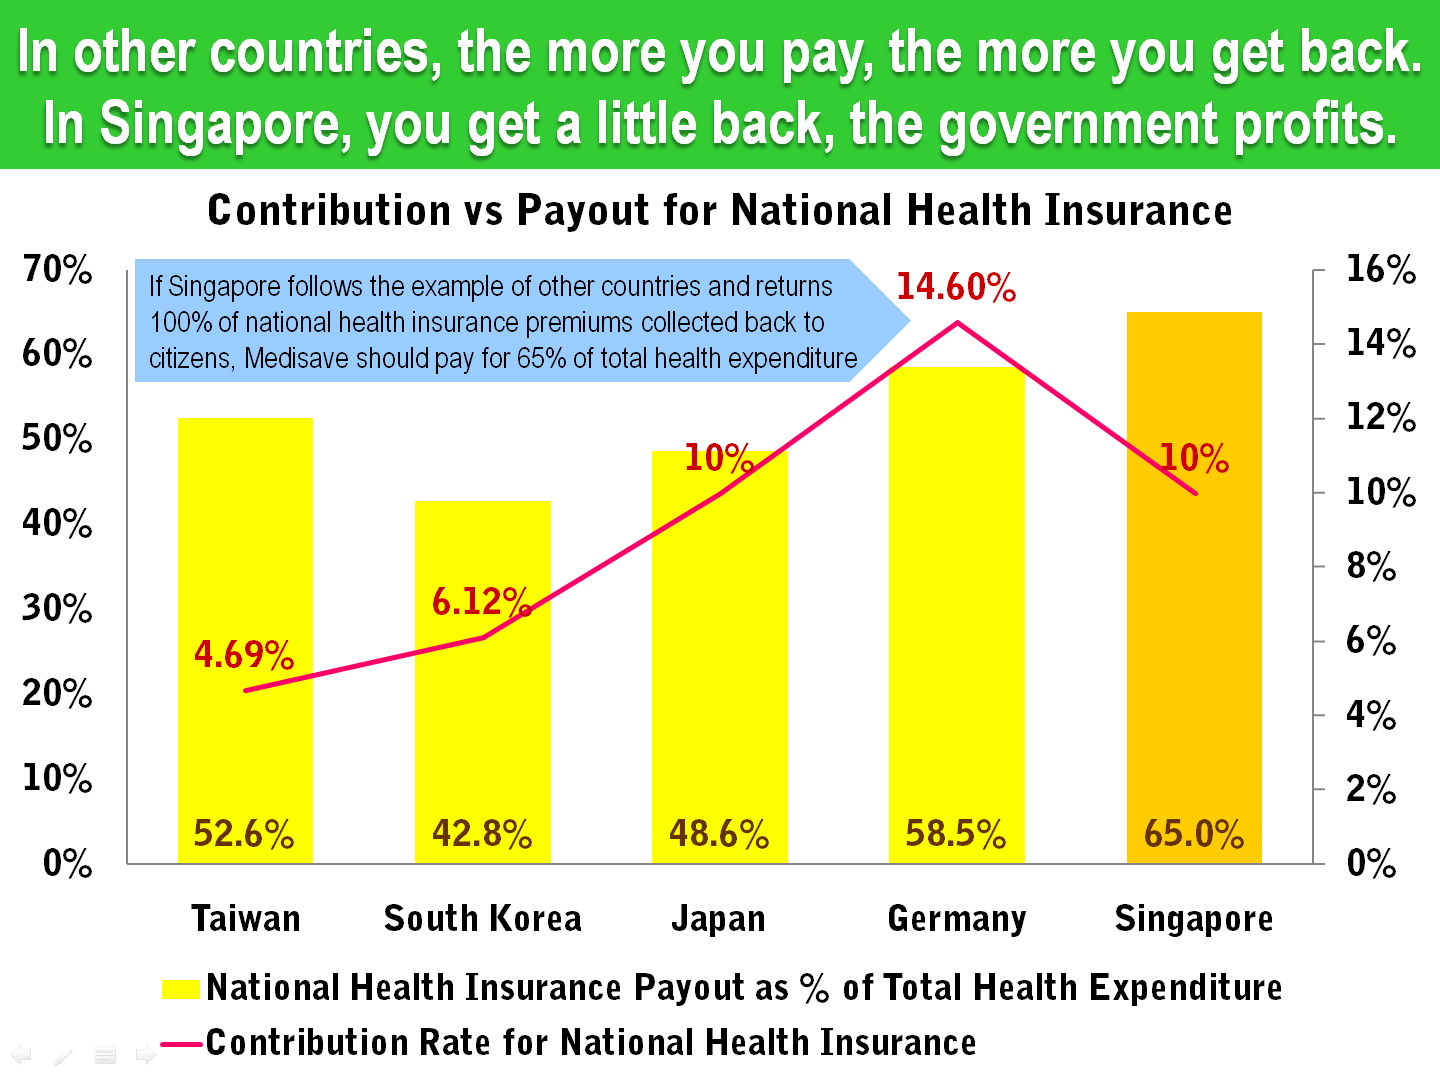 13 Singapore Health Insurance Contribution Rate vs Total Expenditure.png